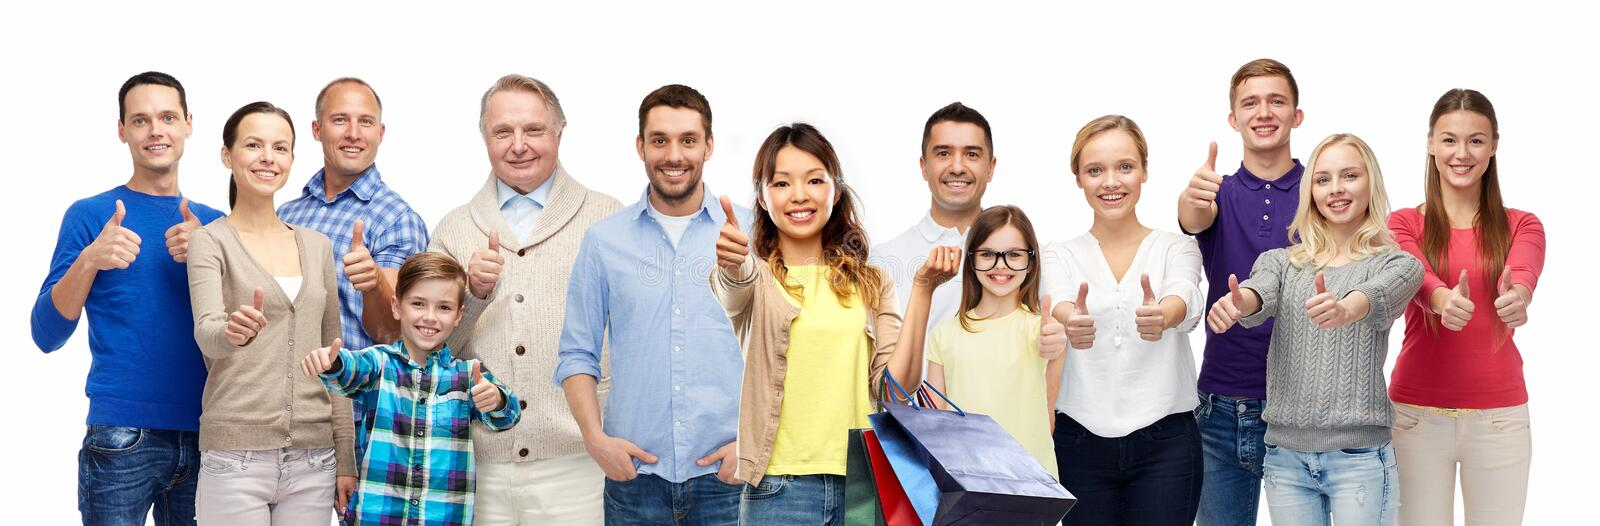 Woman with shopping bags and people show thumbs up stock images